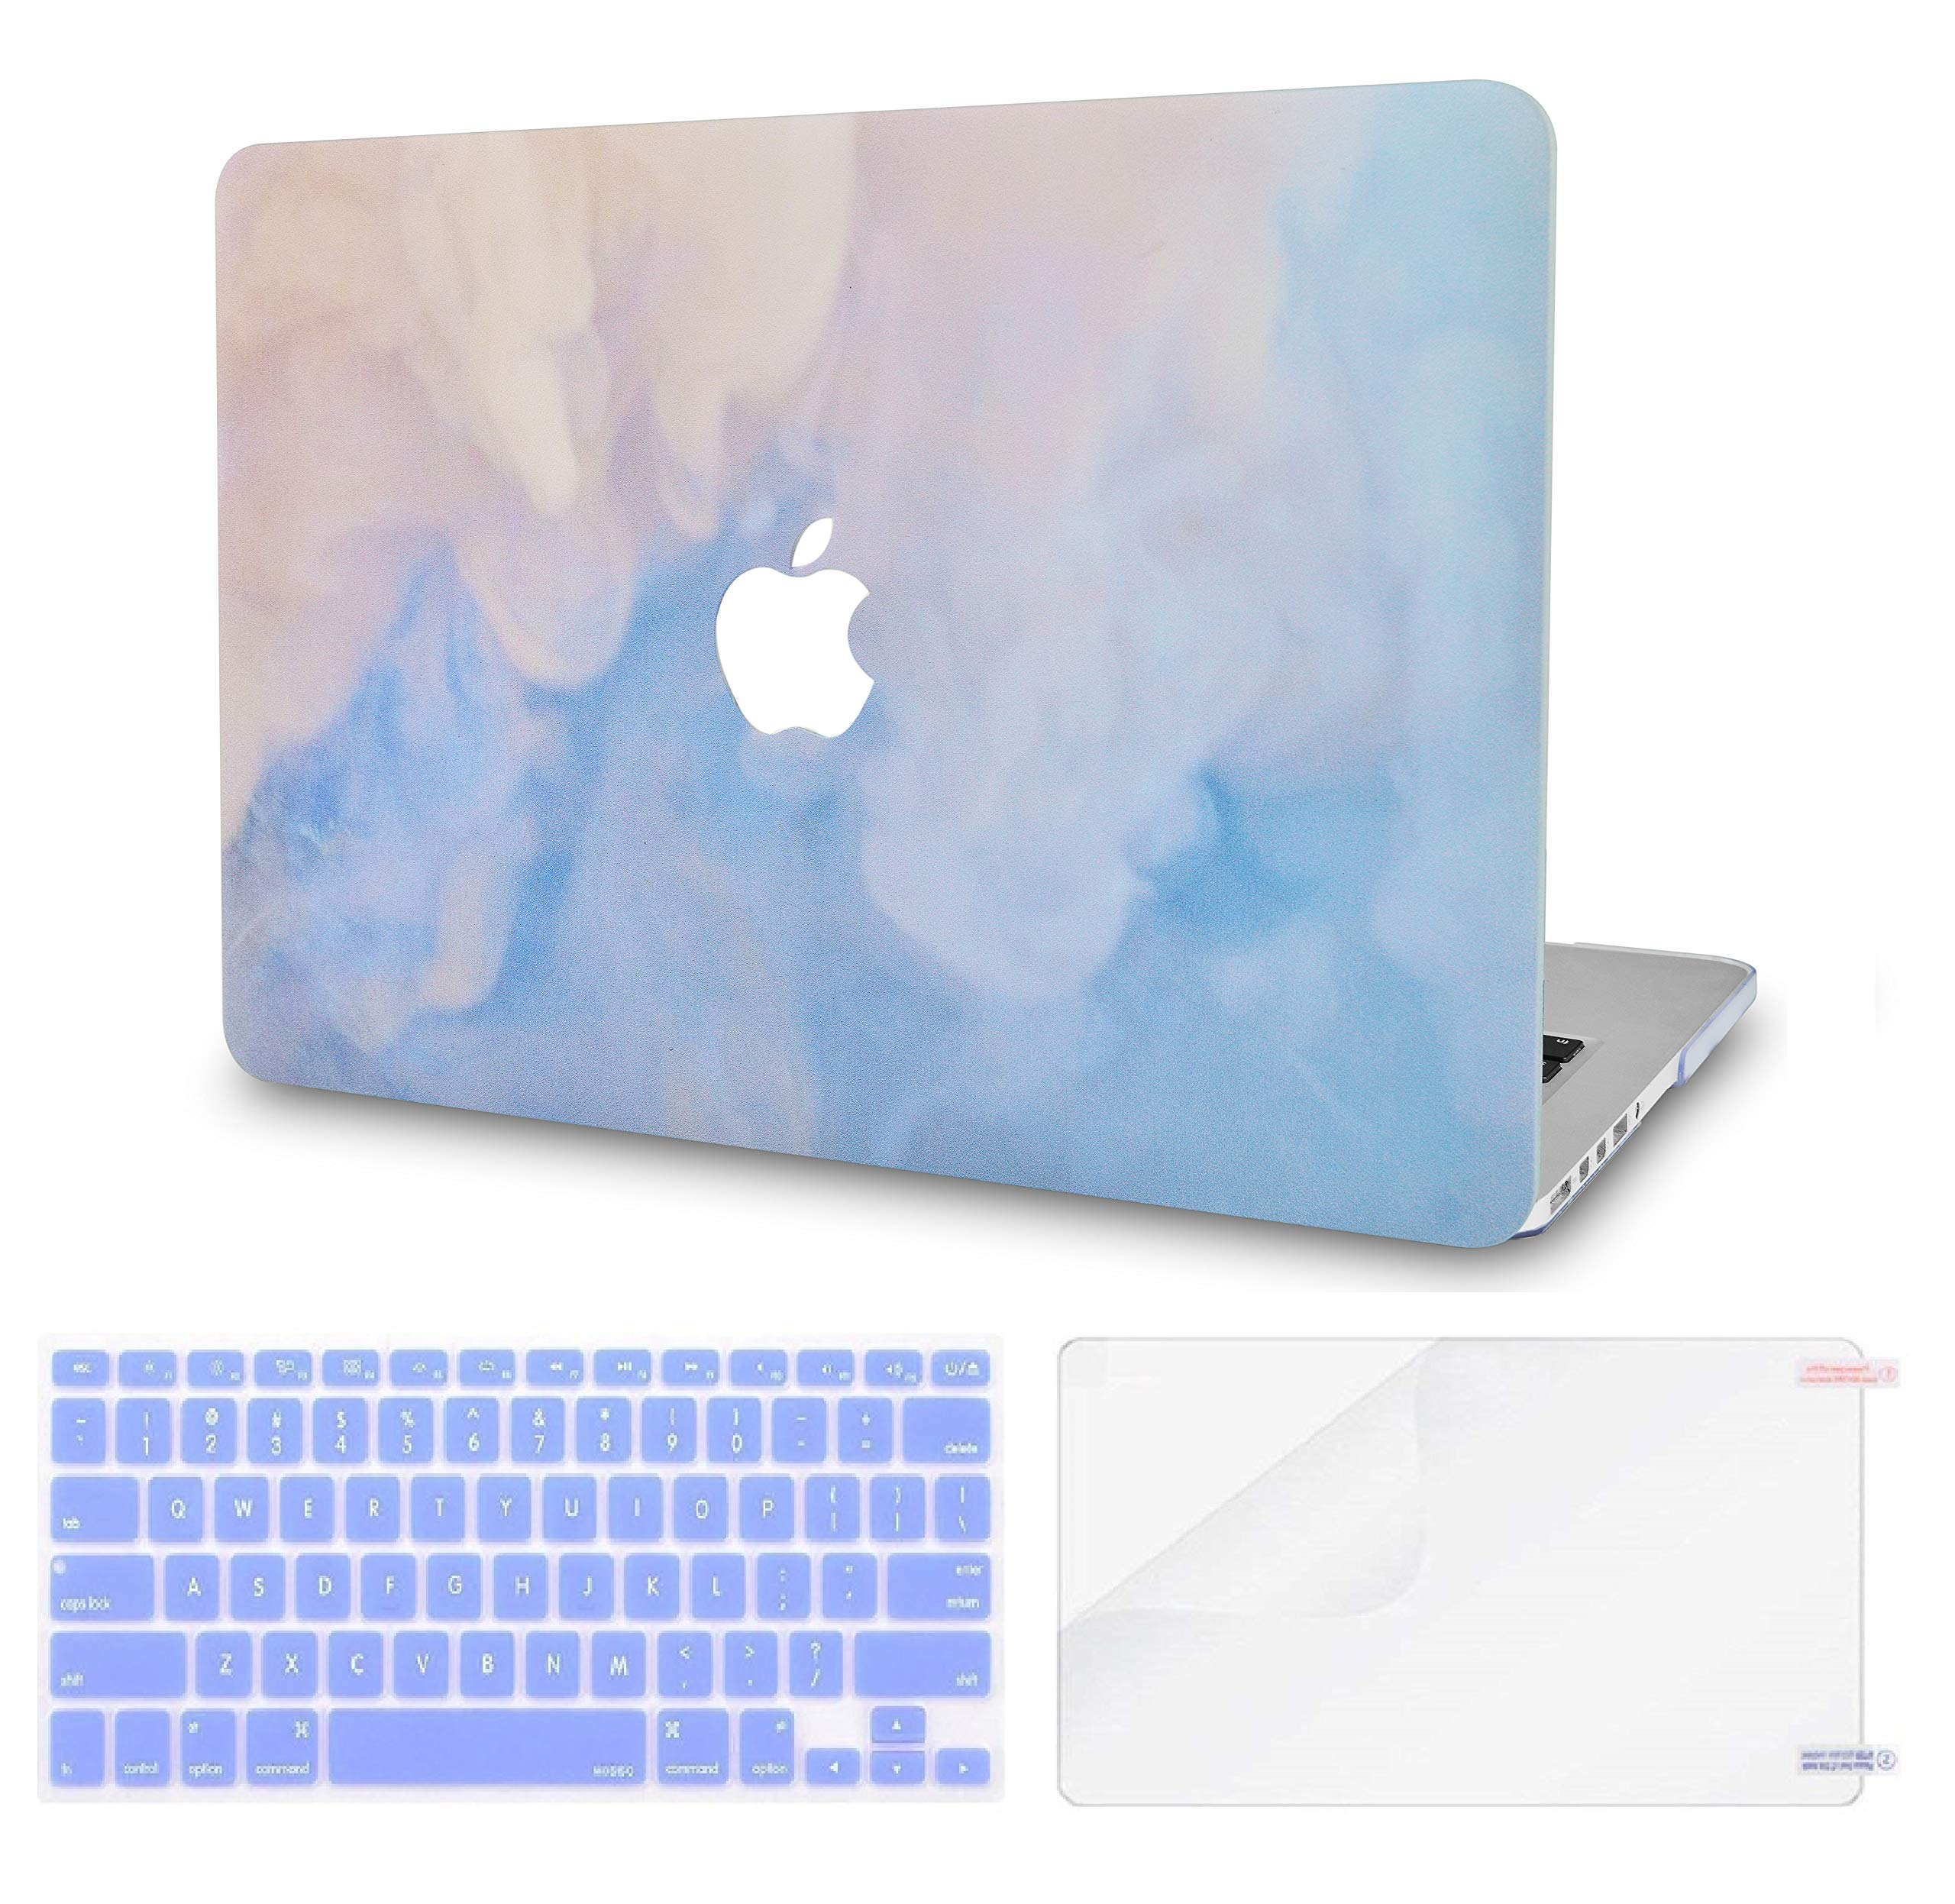 LuvCase 3 in 1 LaptopCase forMacBookAir 13 Inch A1466 / A1369 (No Touch ID)(2010-2017) HardShellCover, Keyboard Cover & Screen Protector(Blue Mist)